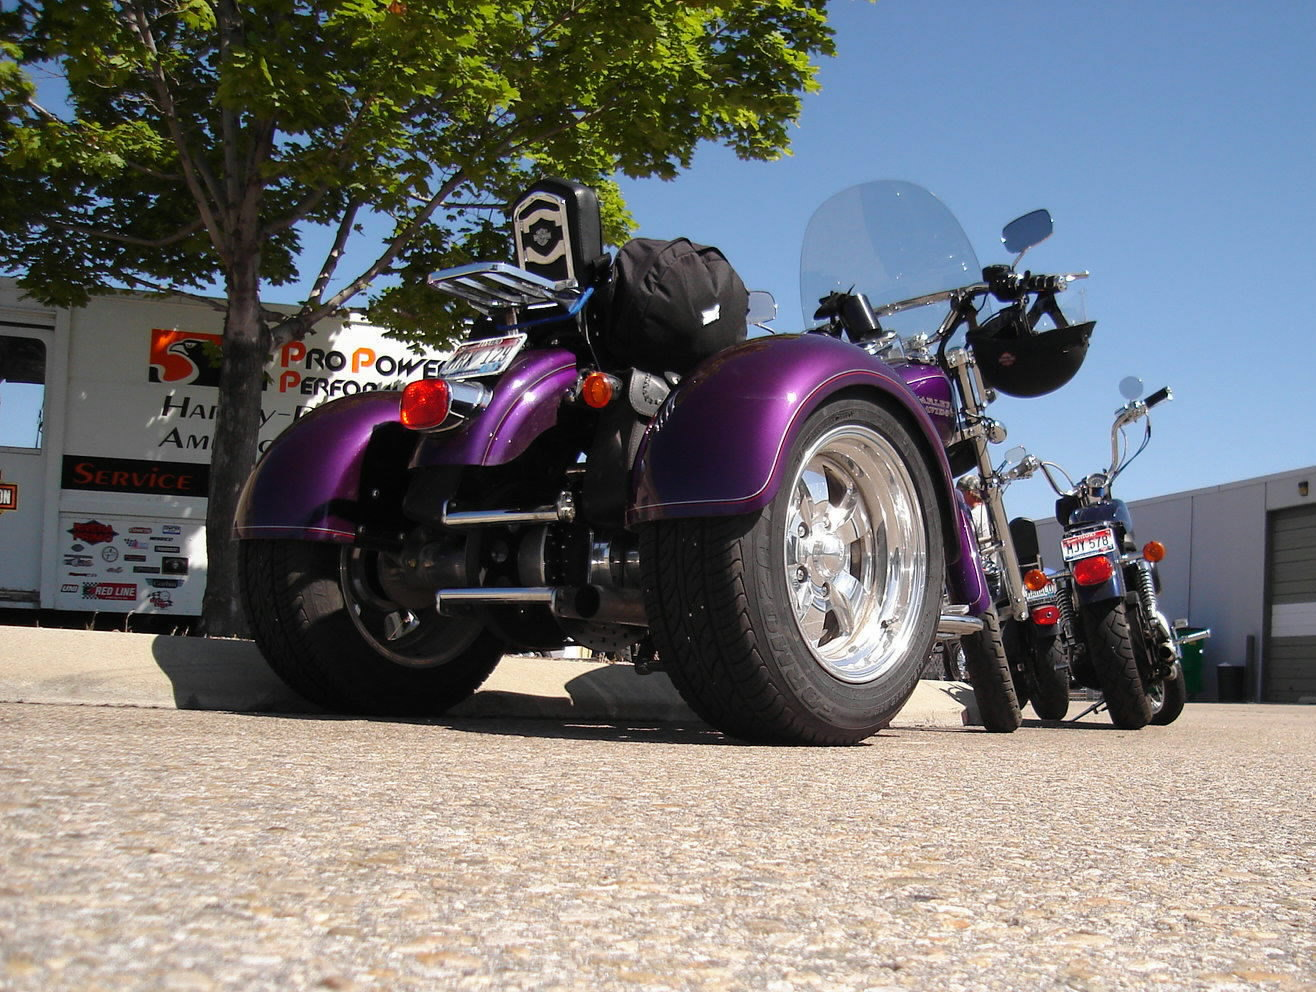 HARLEY DYNA TRIKE CONVERSION - UNFORTUNATELY WE DID NOT GET MUCH DOCUMENTATION ON THIS ONE.